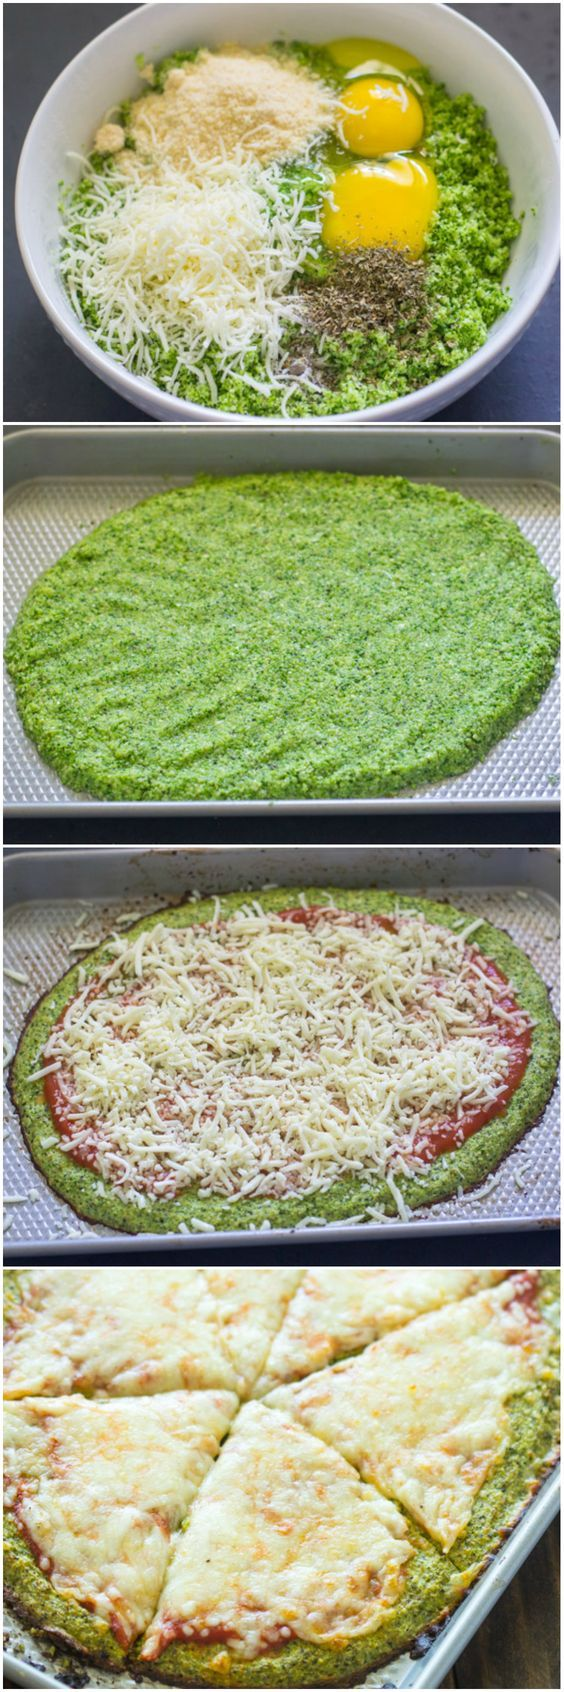 Broccoli Crust Pizza (Paleo, Low-carb, Gluten free)